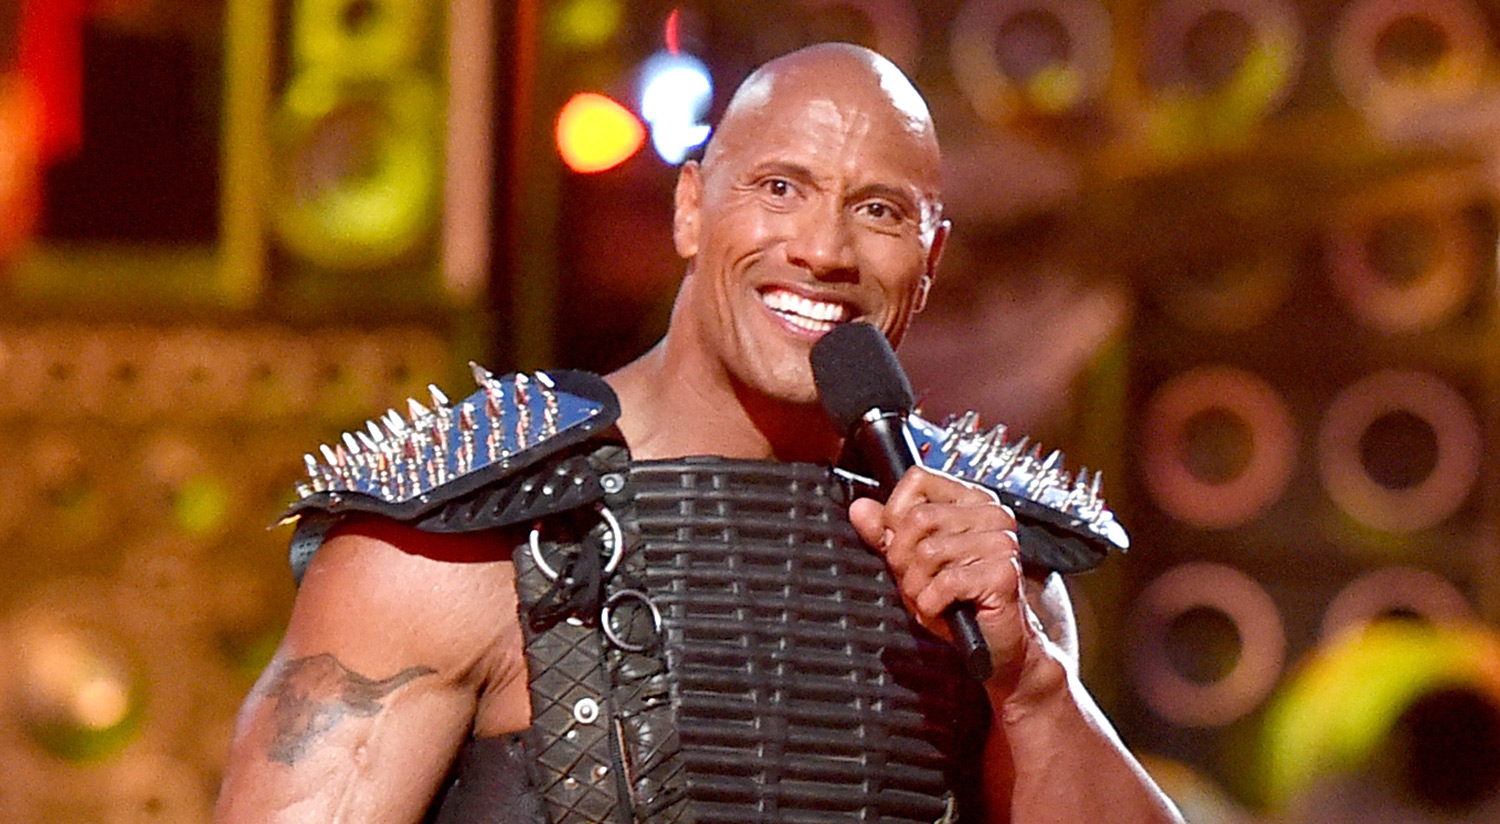 what movies does the rock play in